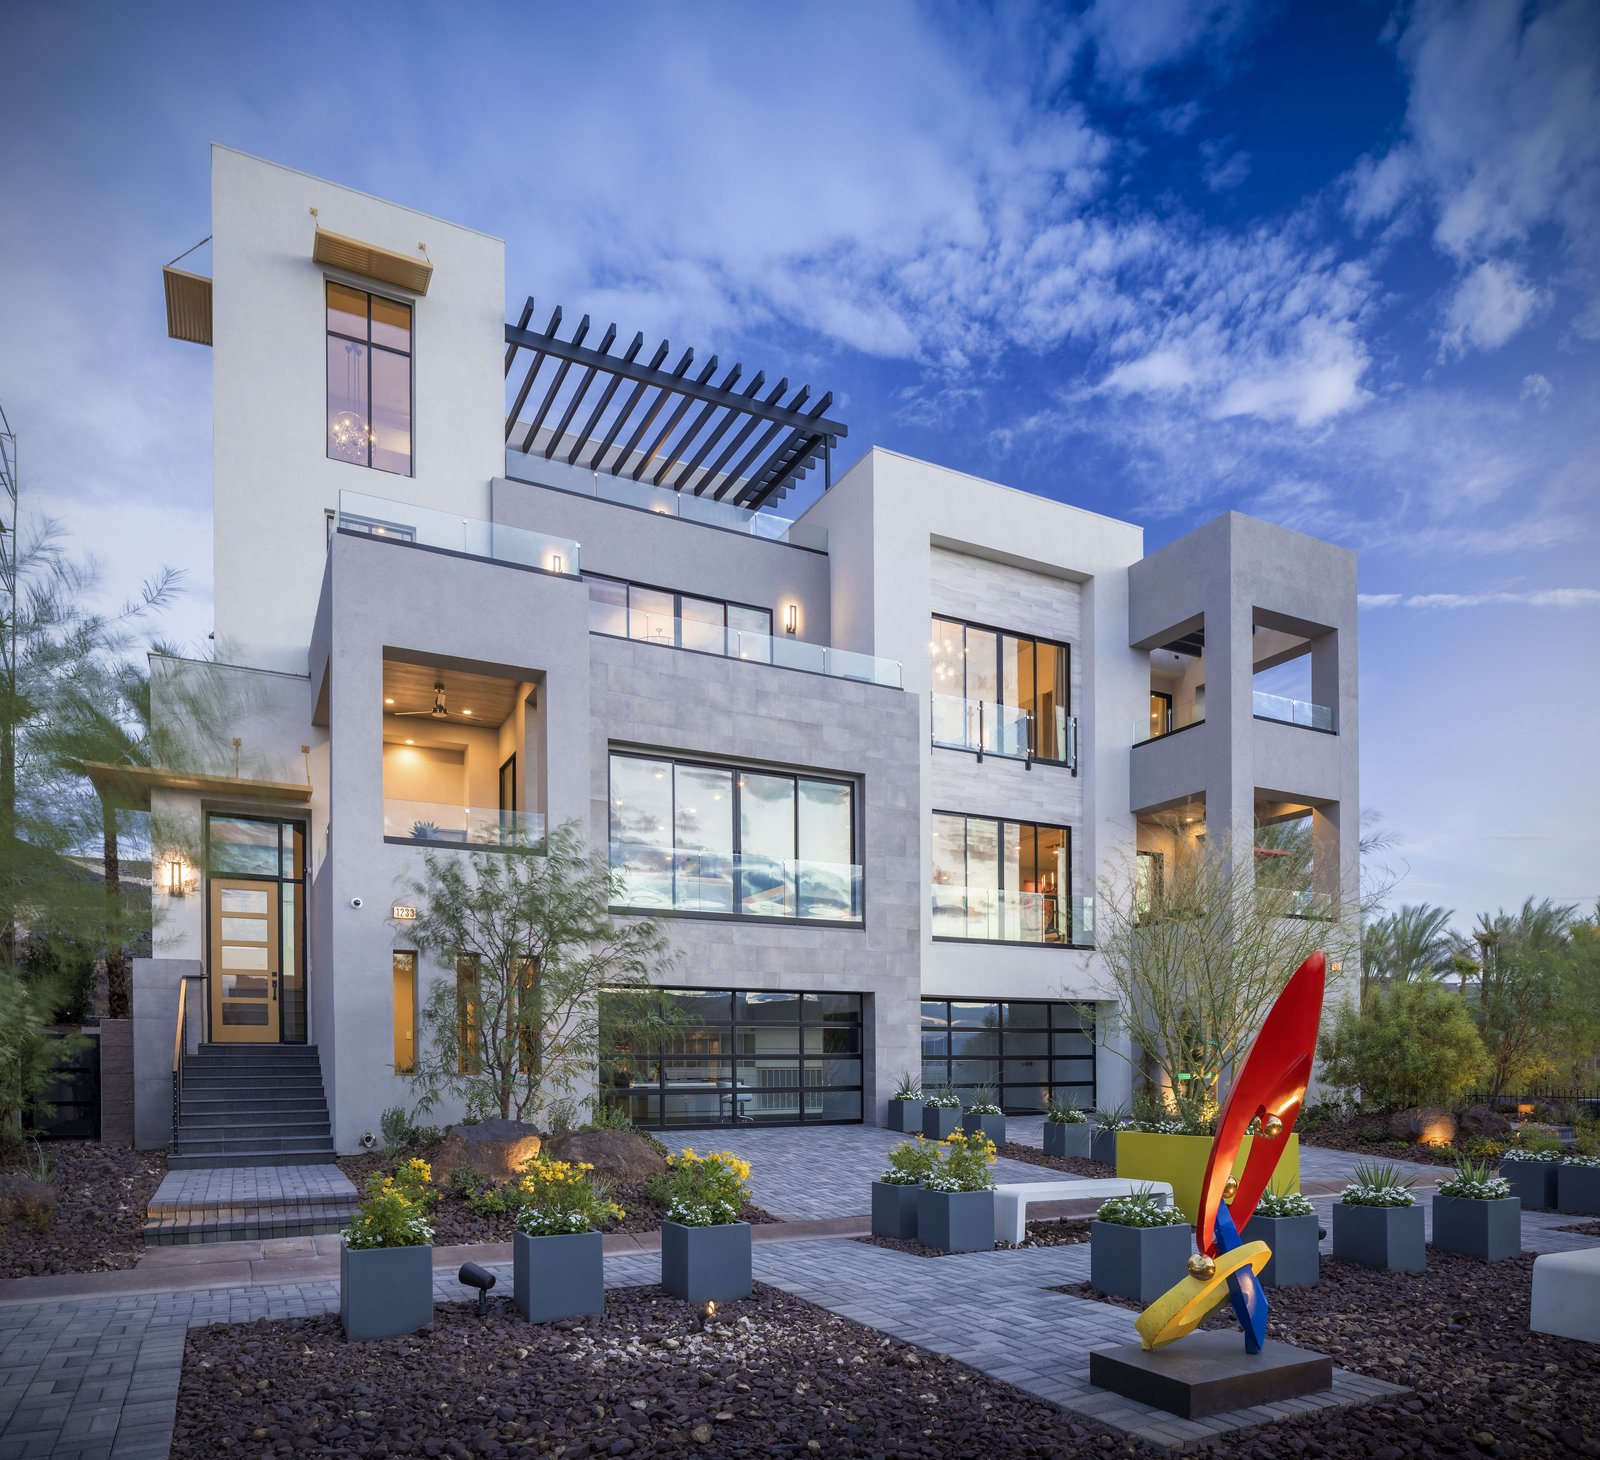 Exterior, Concrete Siding Material, Flat RoofLine, and House Building Type Pulling inspiration from the Greek island of Santorini, these townhomes are designed with simple forms, clean lines and a cool color palette of whites, creams and blues.  Vu at MacDonald Highlands by KTGY Architecture + Planning